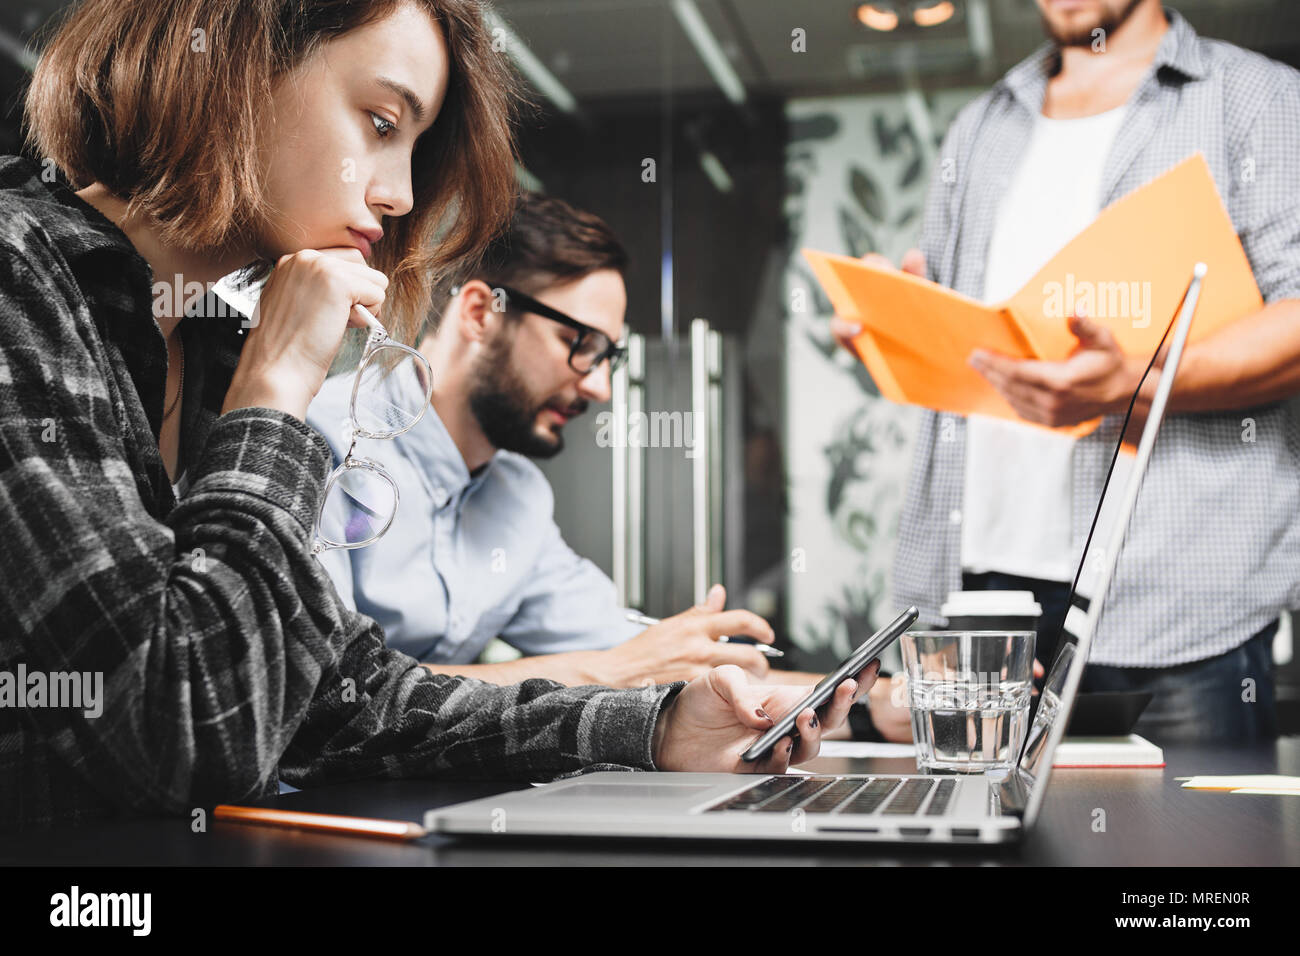 Team of modern startup managers works on laptop in loft space. Teamwork brainstorming concept. Analyzing new idea and developing plan - Stock Image